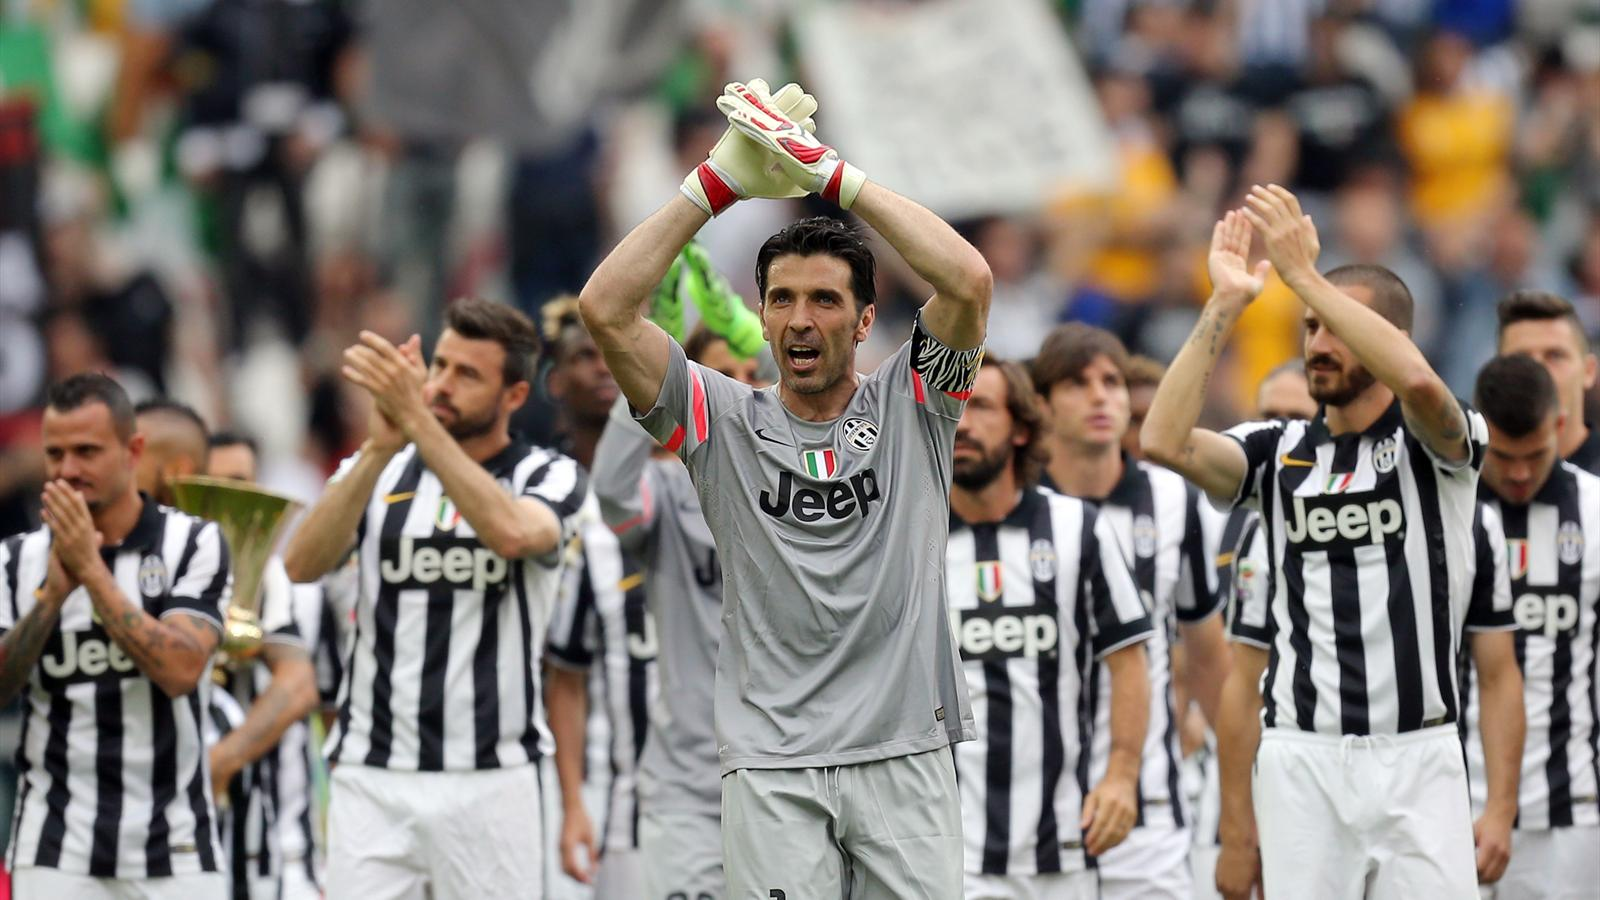 Gianluigi Buffon salutes the Juventus fans.